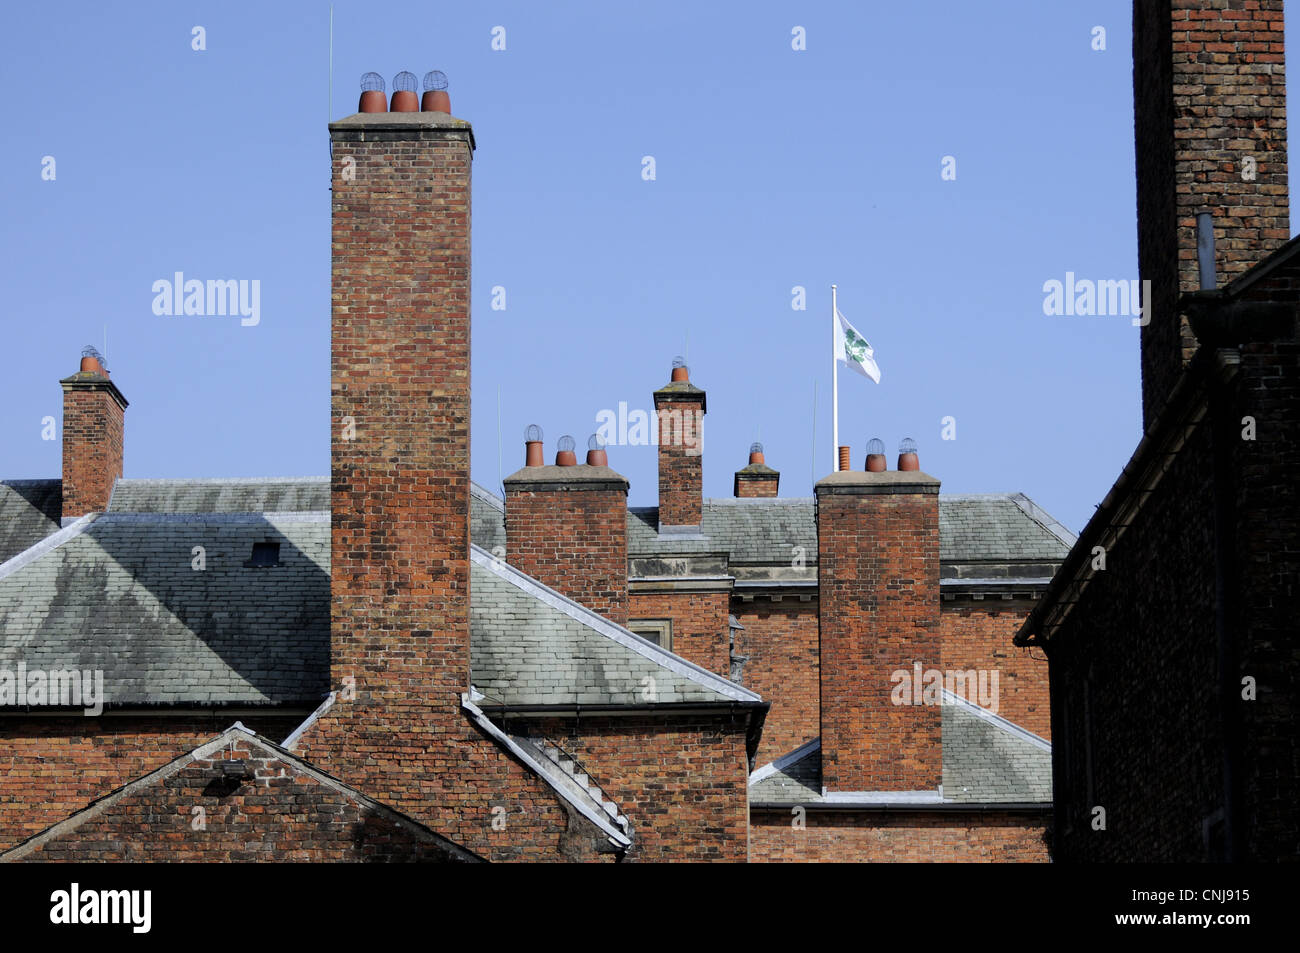 Chimney stacks at Dunham Massey with National Trust flag flying behind them - Stock Image